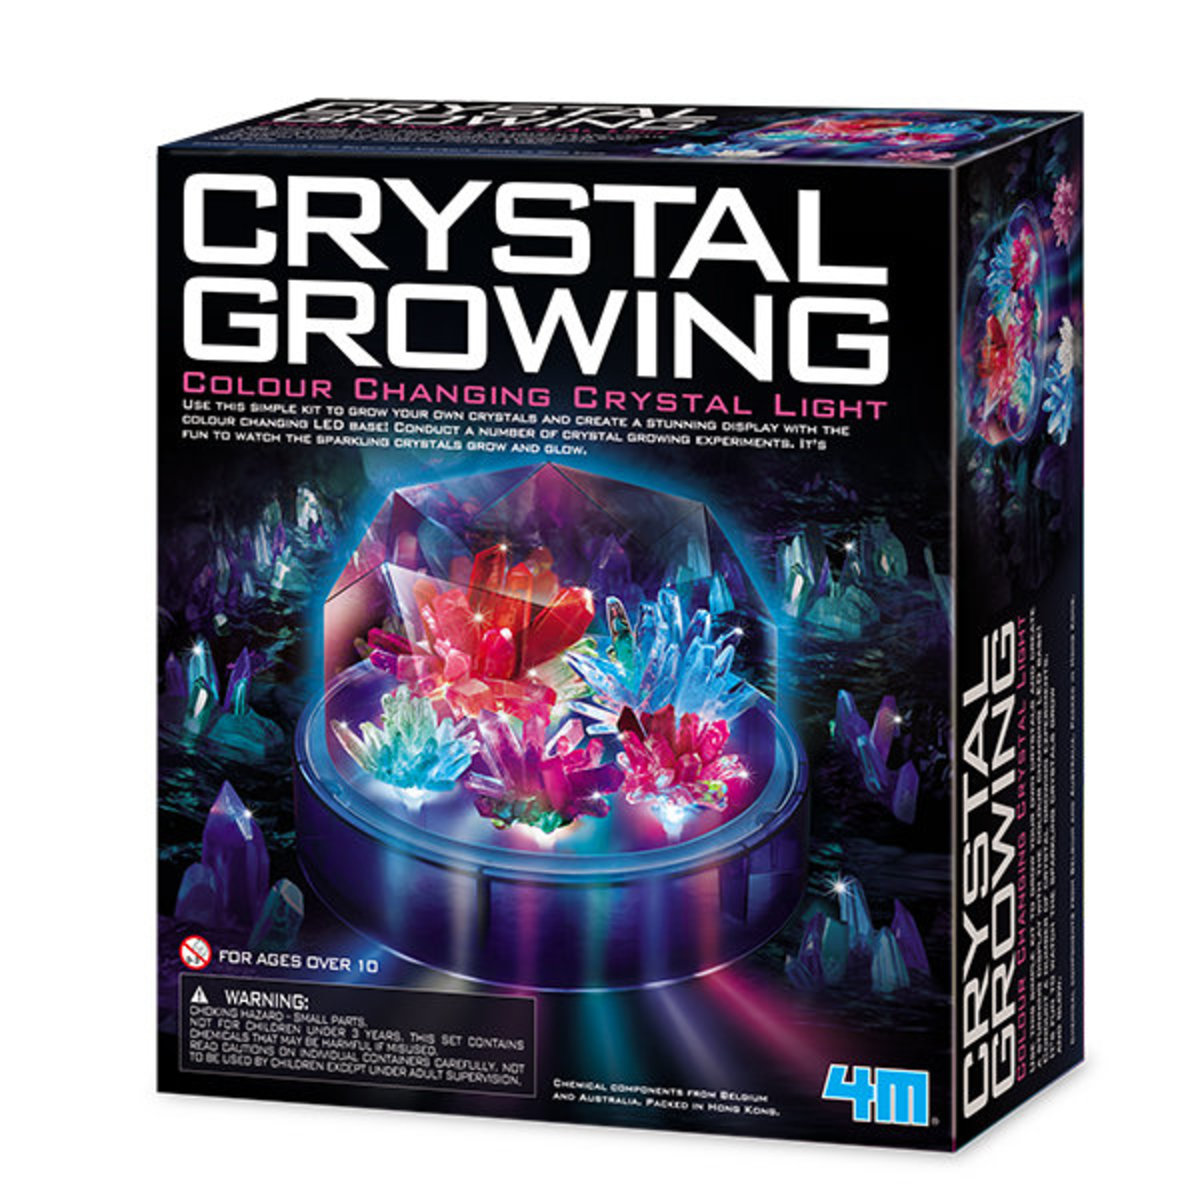 Crystal Growing Colour Changing Crystal Light